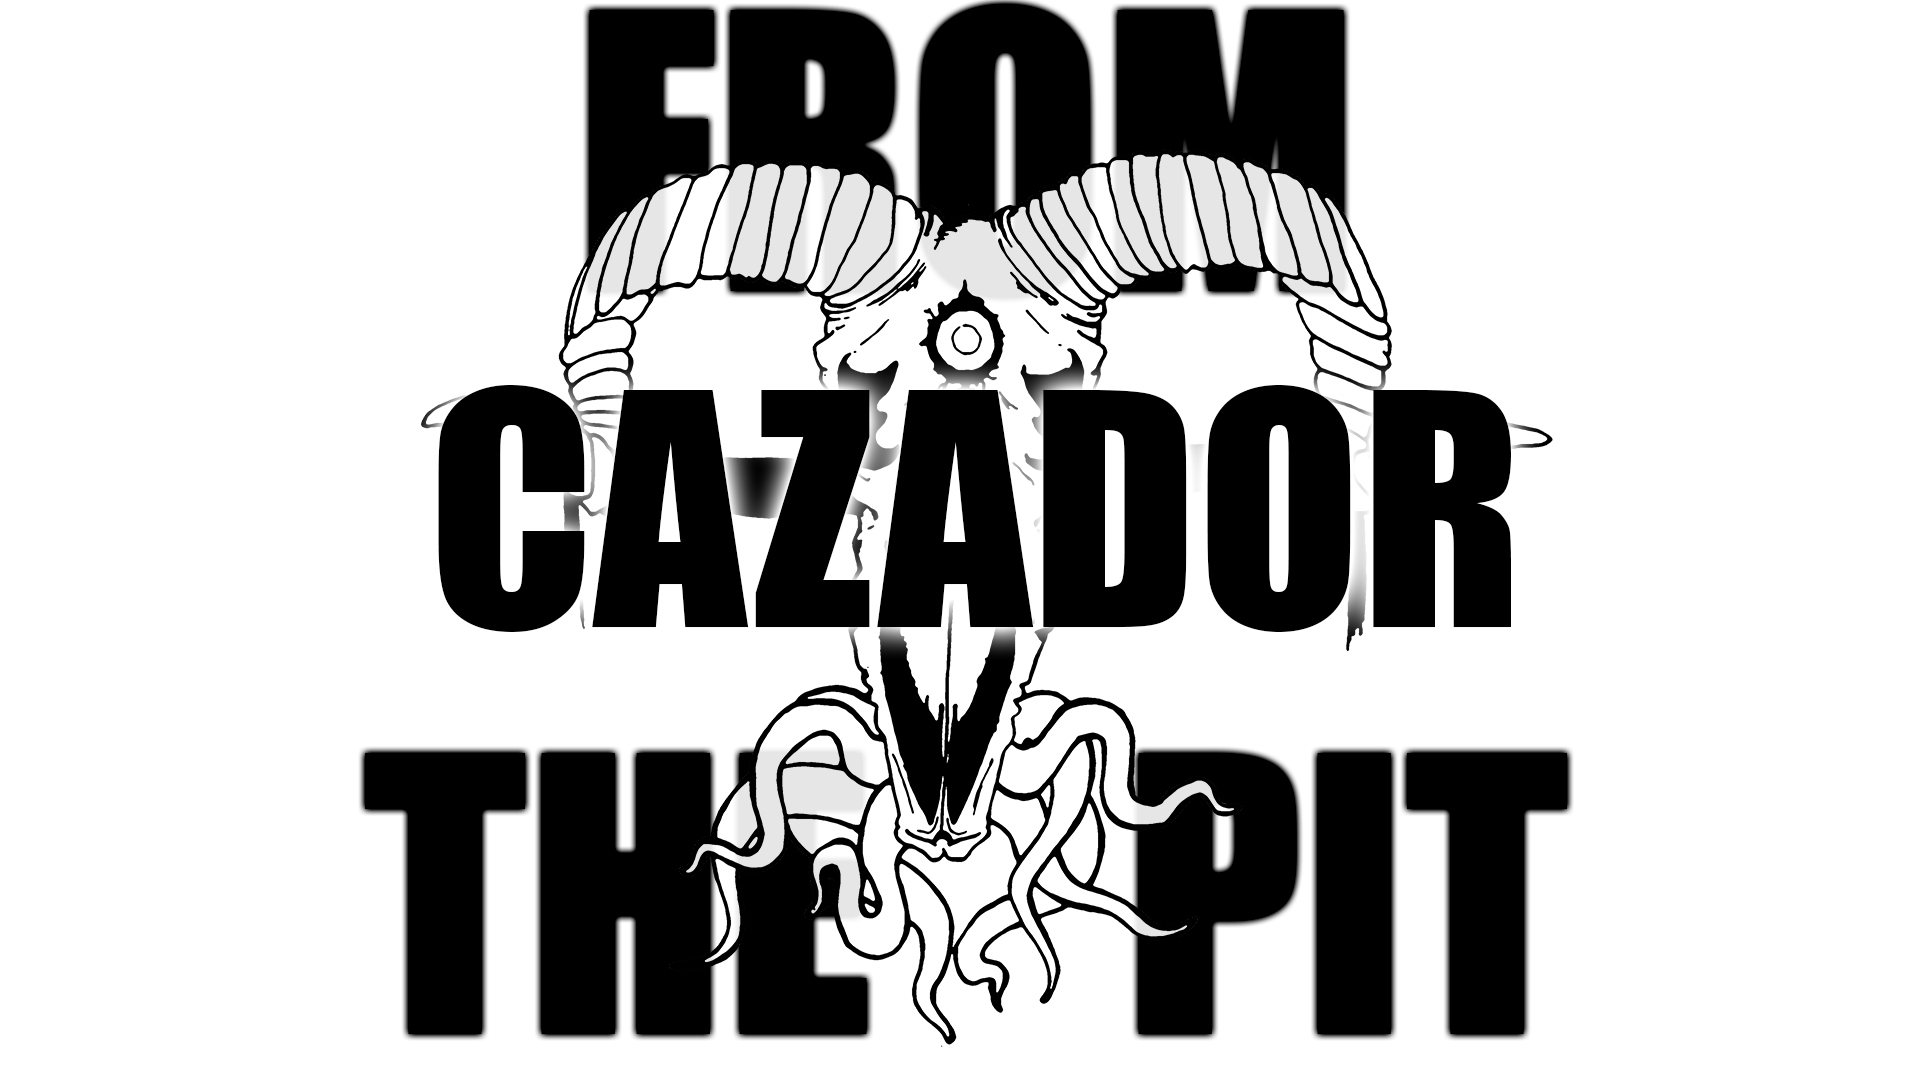 Cazador Interview